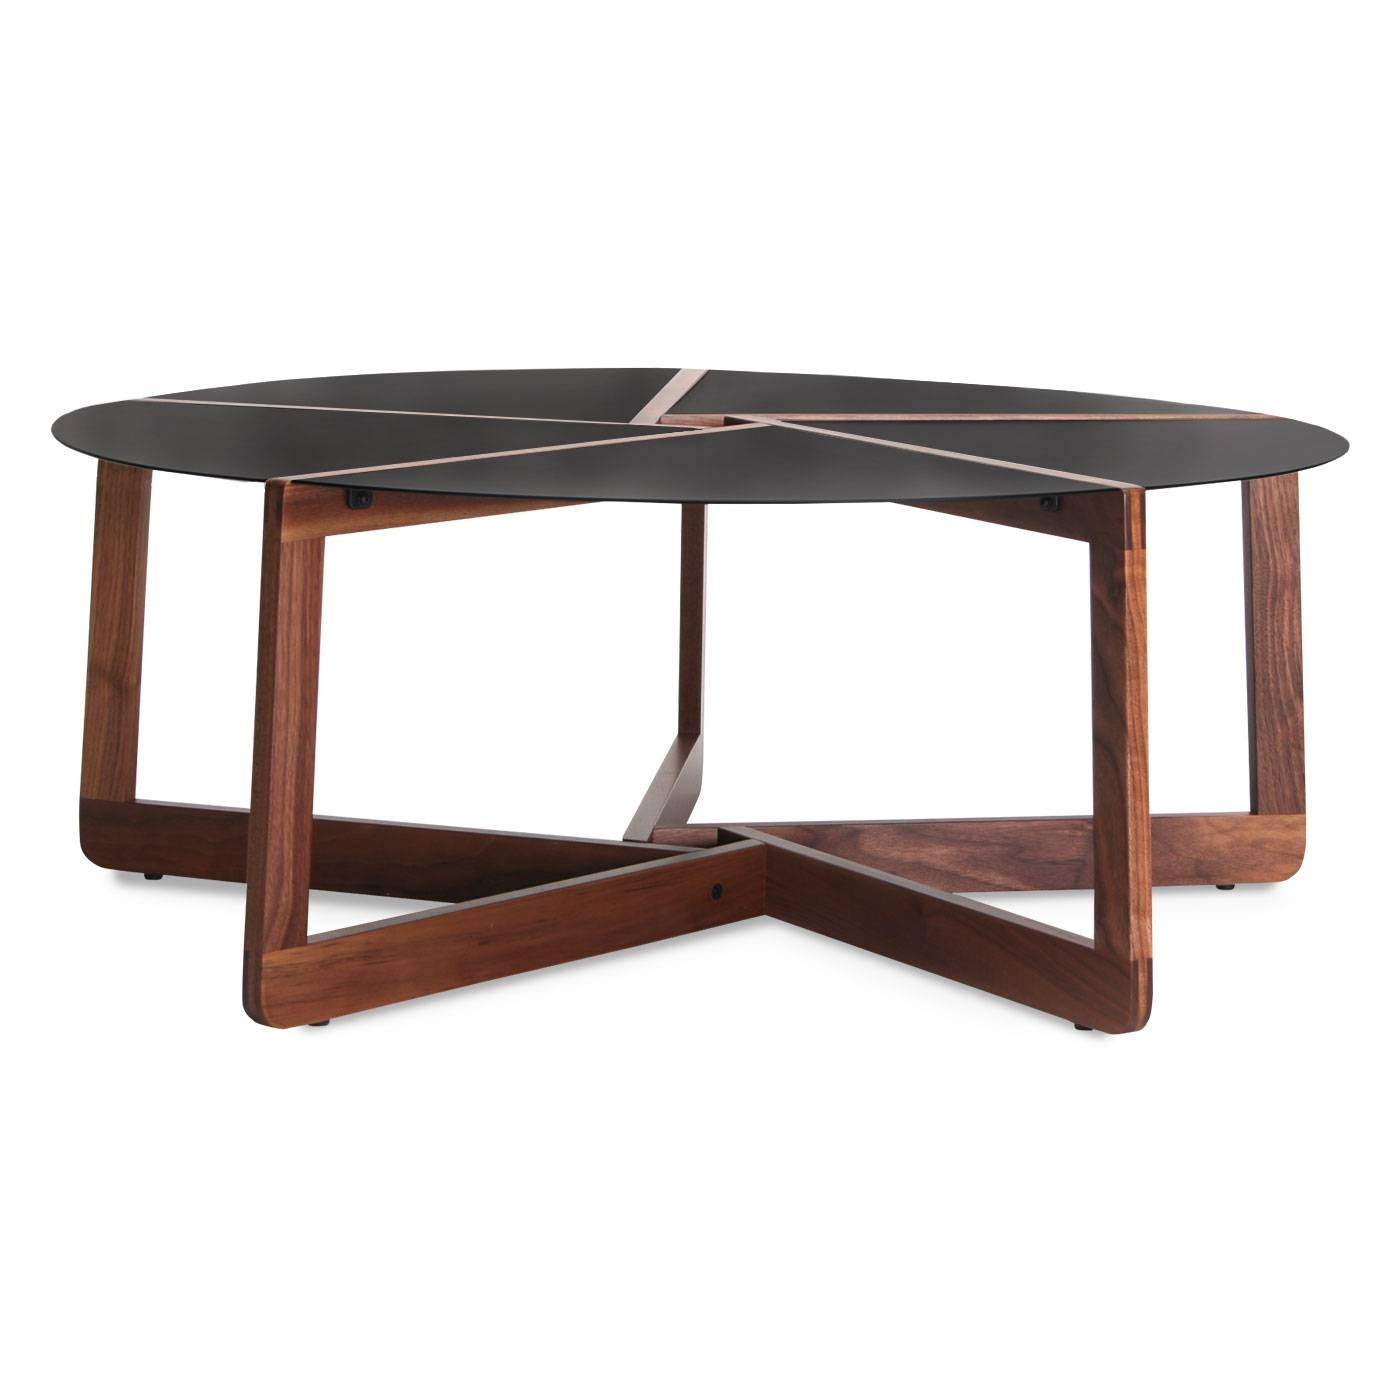 Pi Coffee Table - Round Wood & Metal Coffee Table | Blu Dot in Round Steel Coffee Tables (Image 17 of 30)